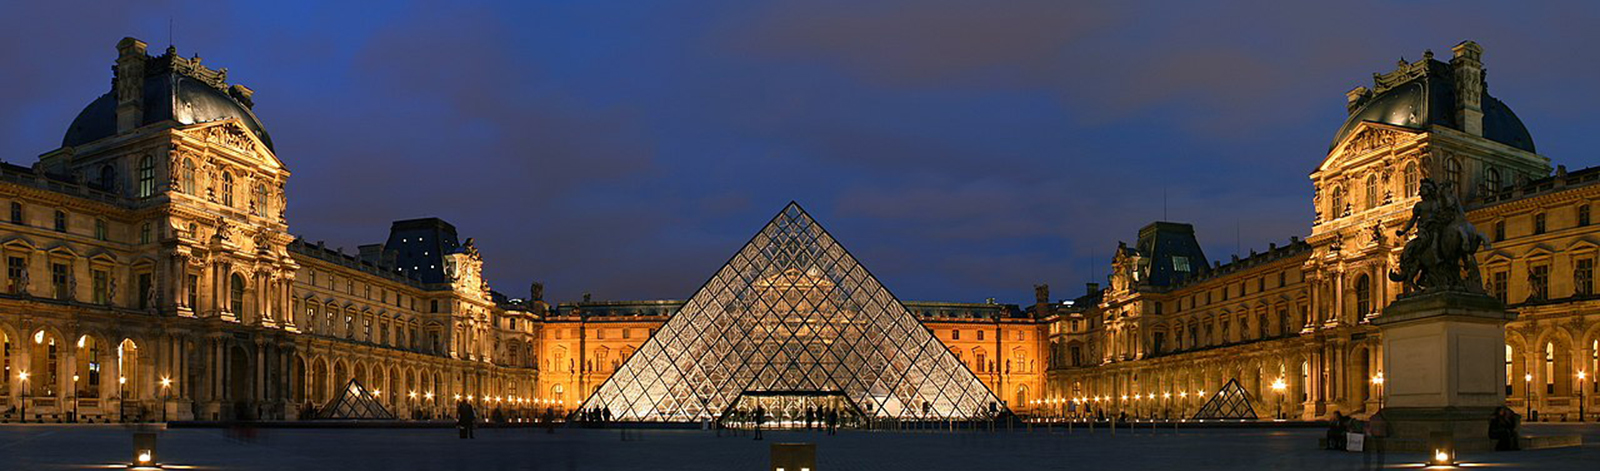 Courtyard of the Museum of Louvre, and its pyramid